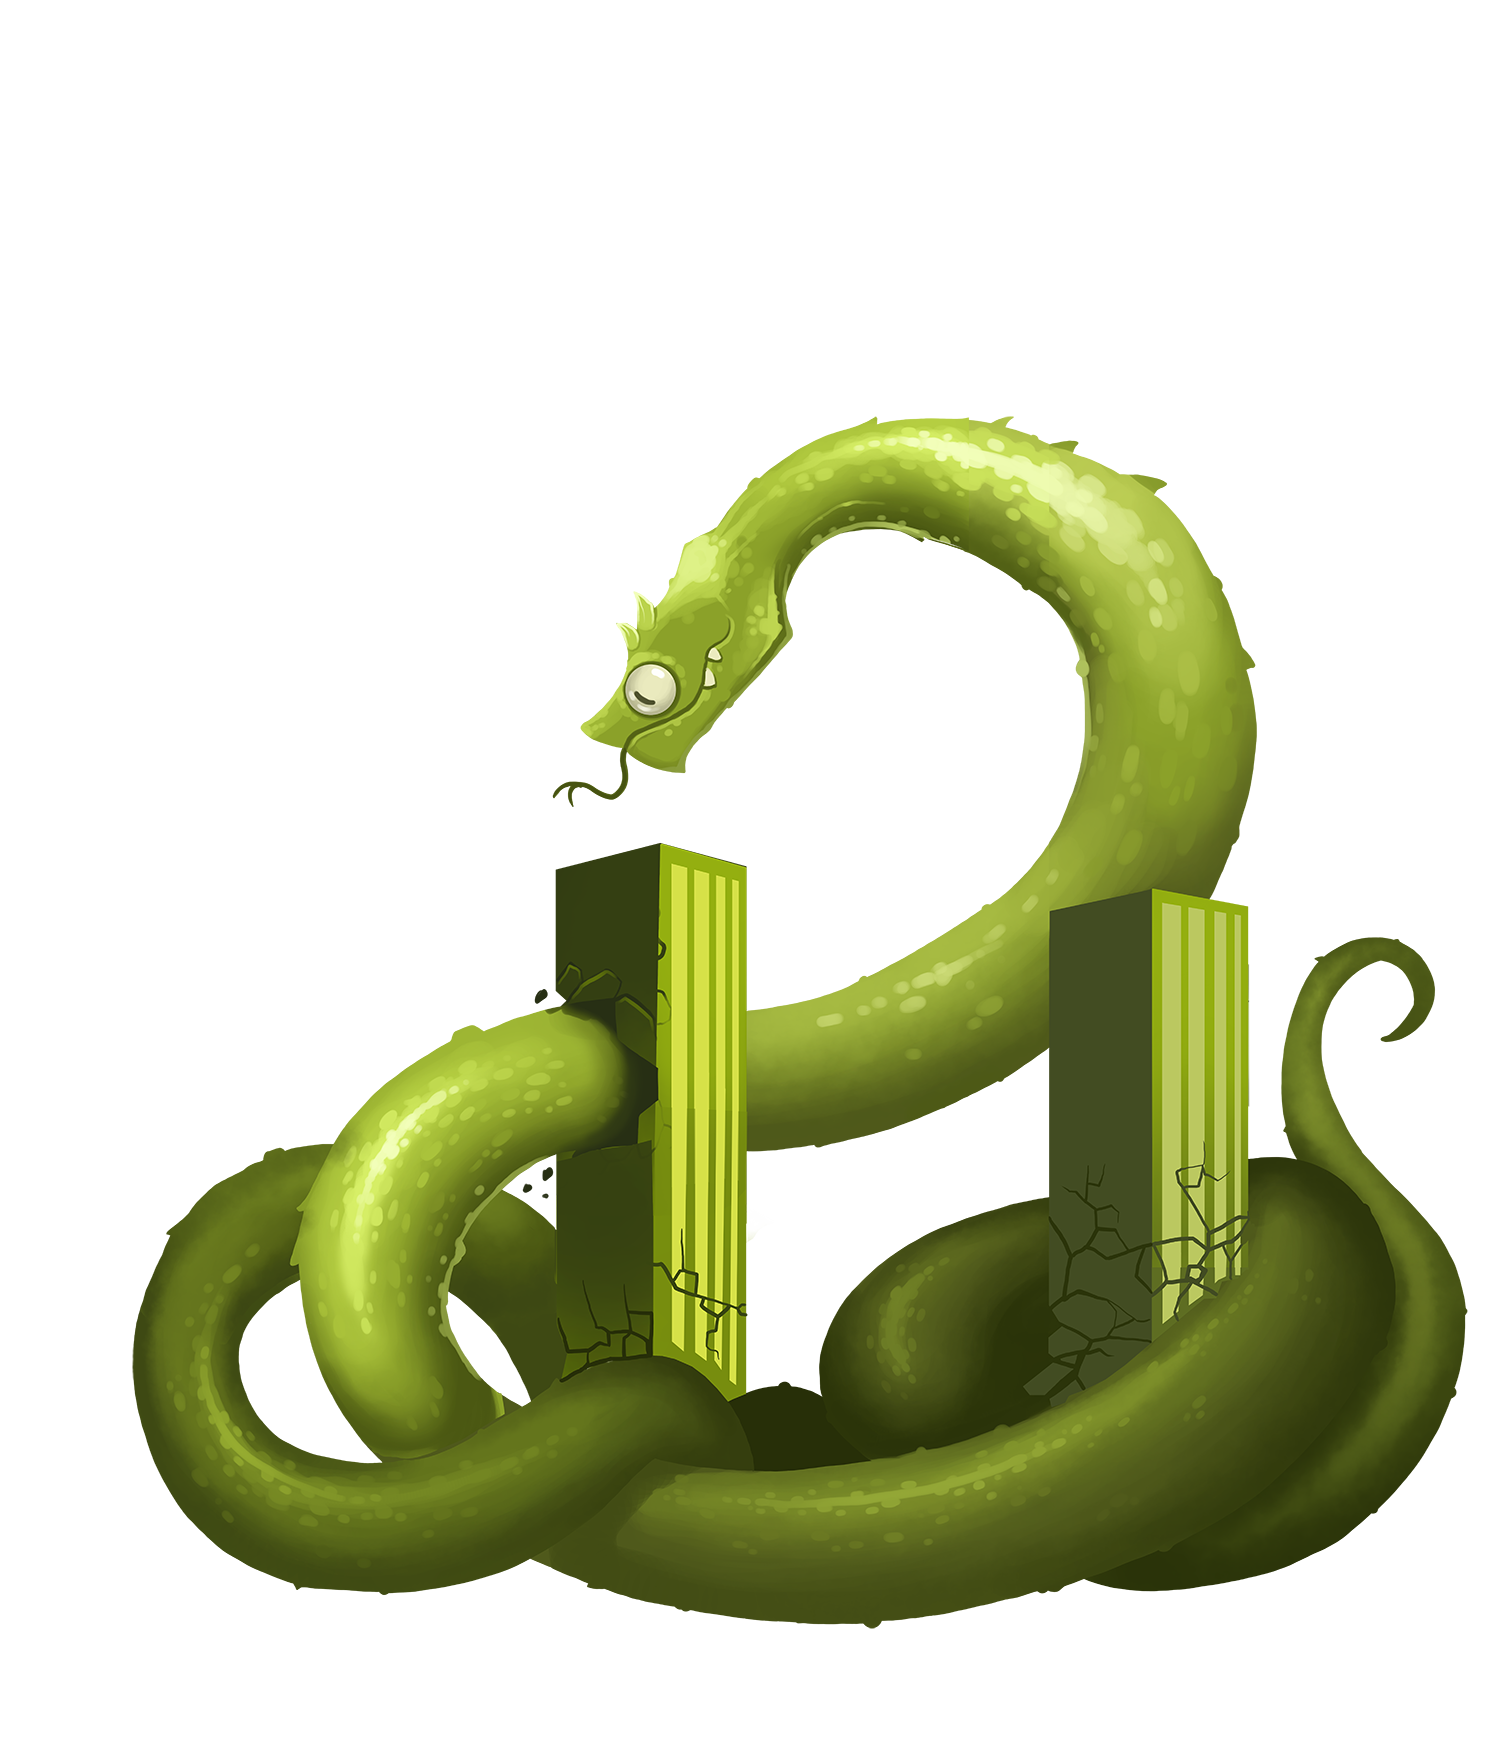 A giant illustrated green snake tears through a building.